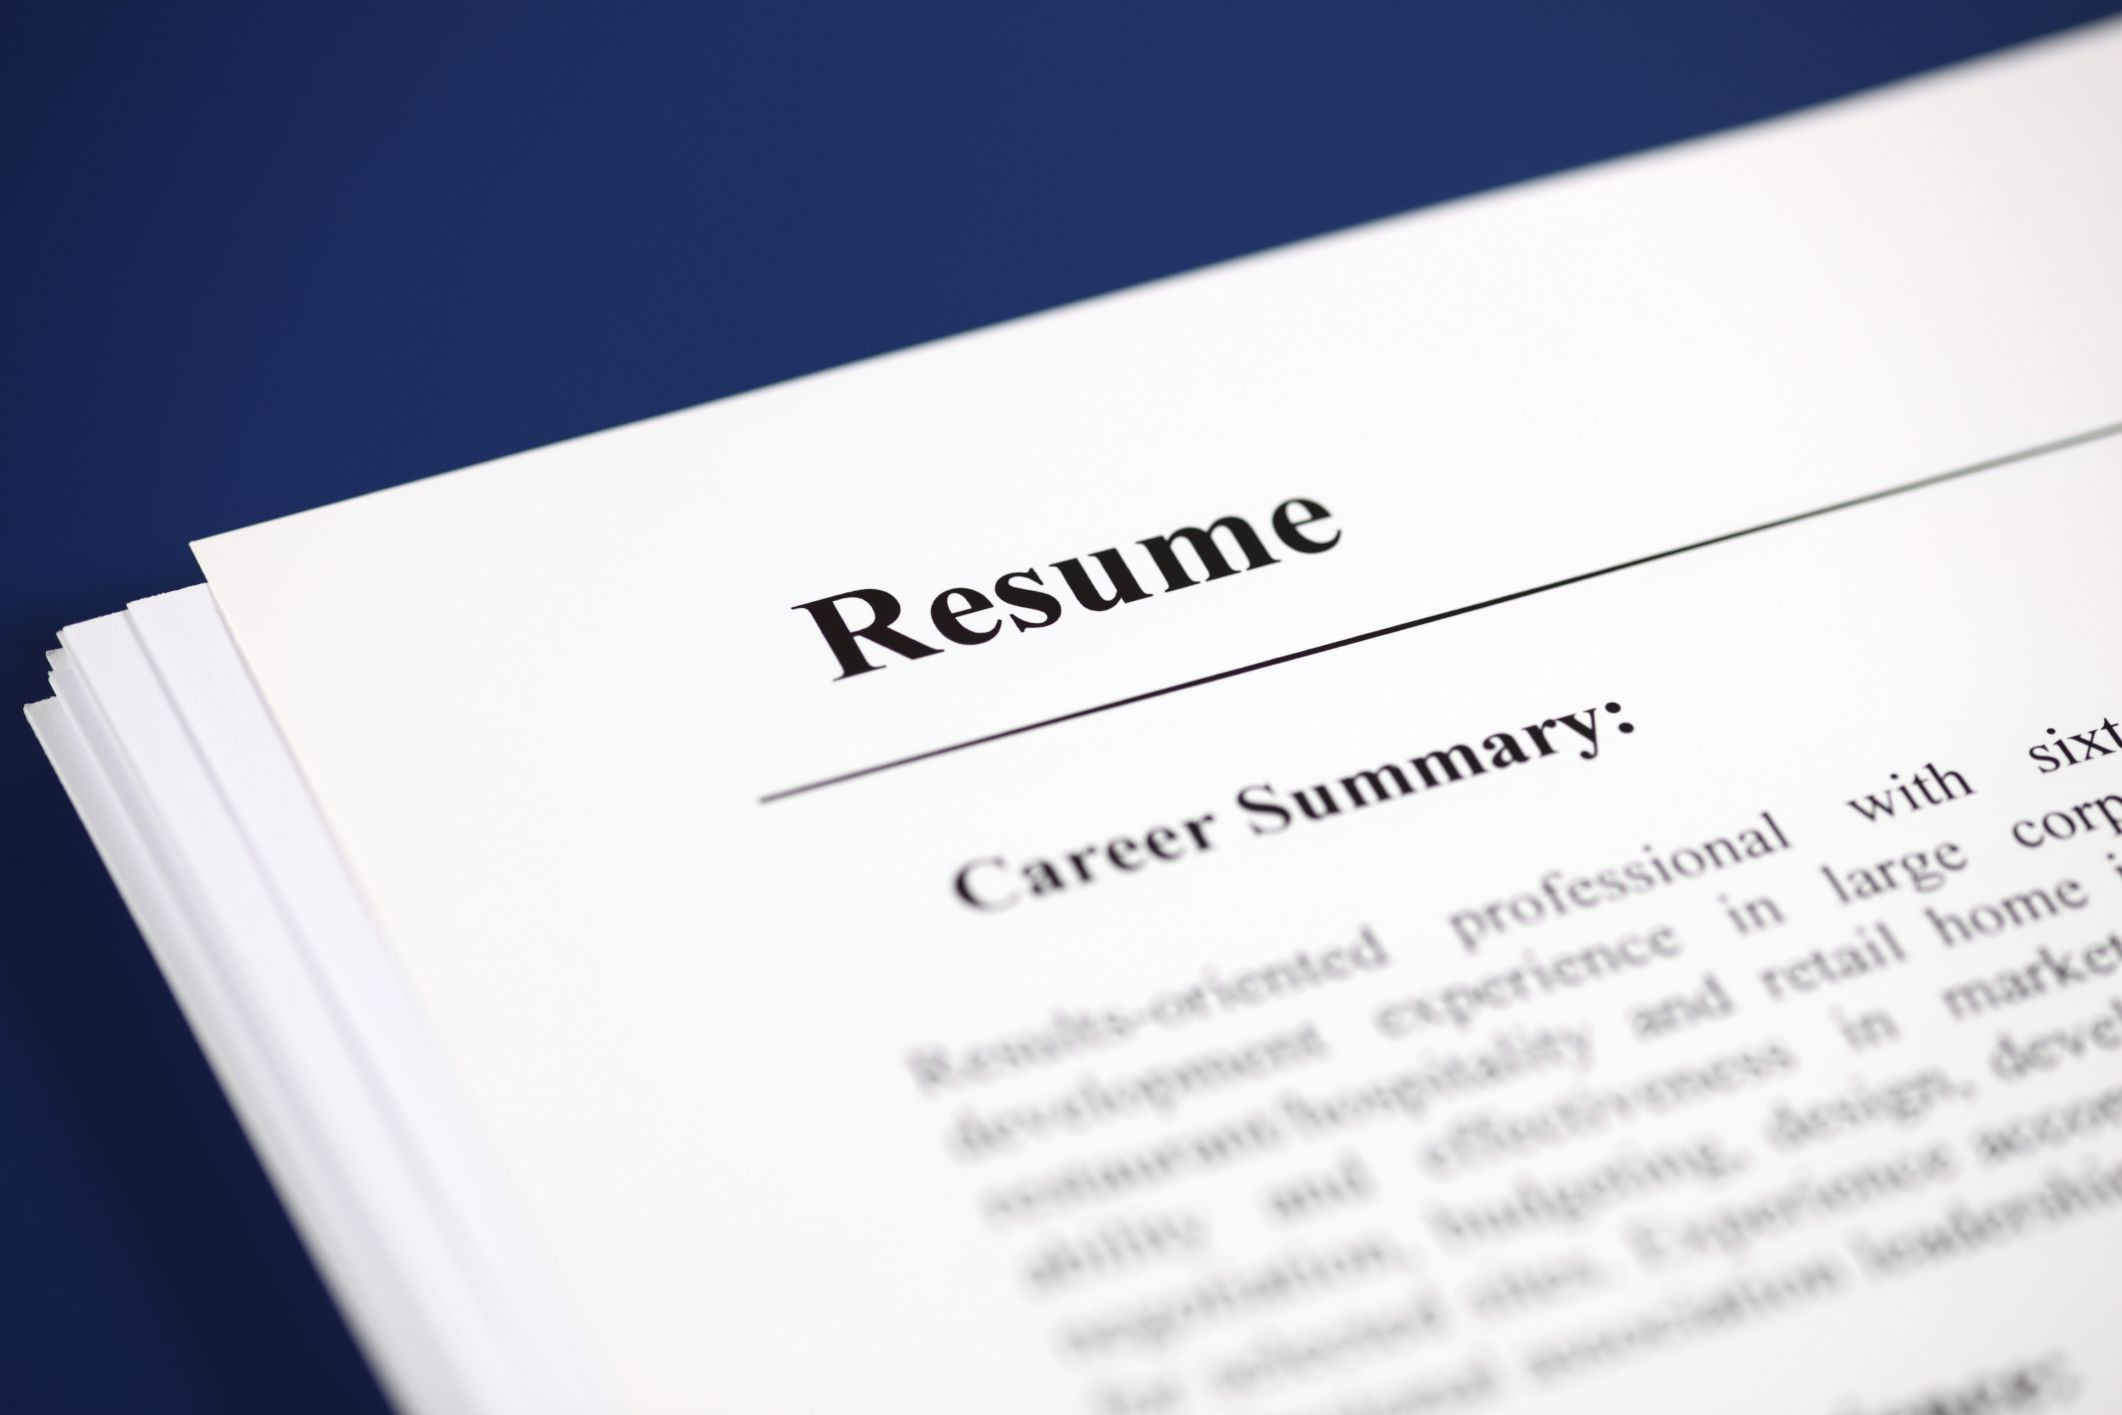 What Is A Summary Of Qualifications On A Resume?